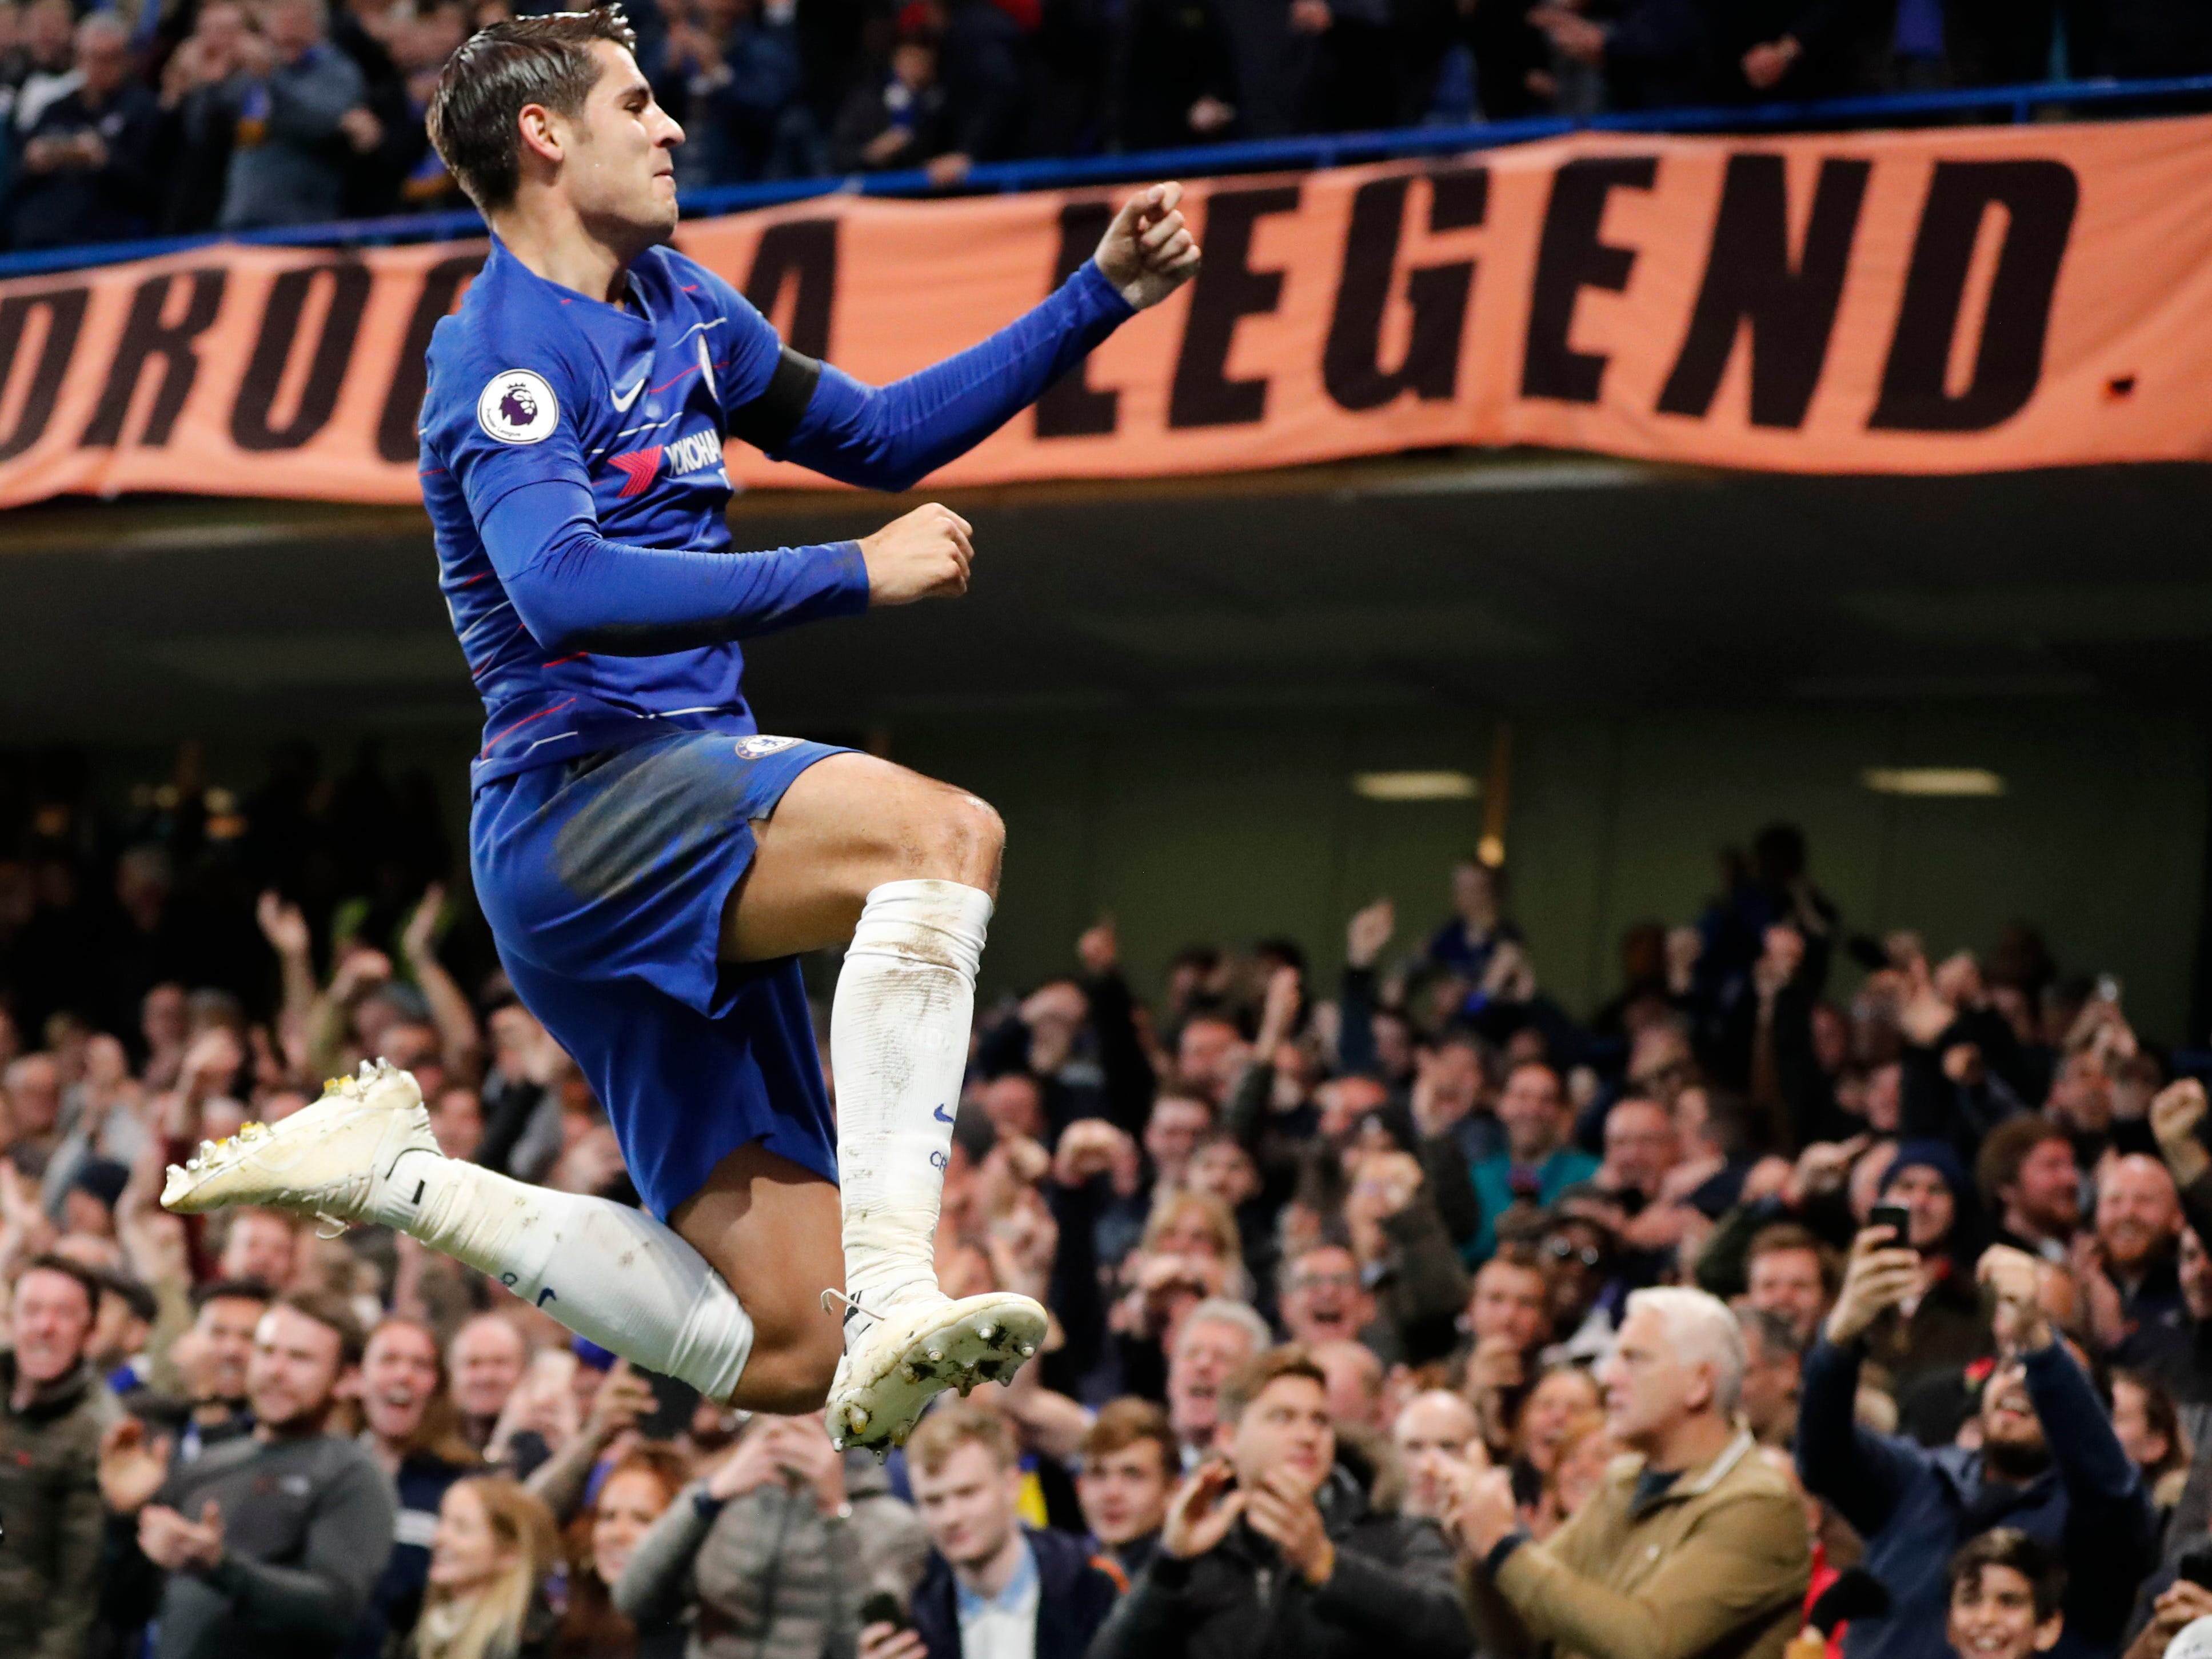 Chelsea's Alvaro Morata celebrates after scoring the opening goal against Crystal Palace.